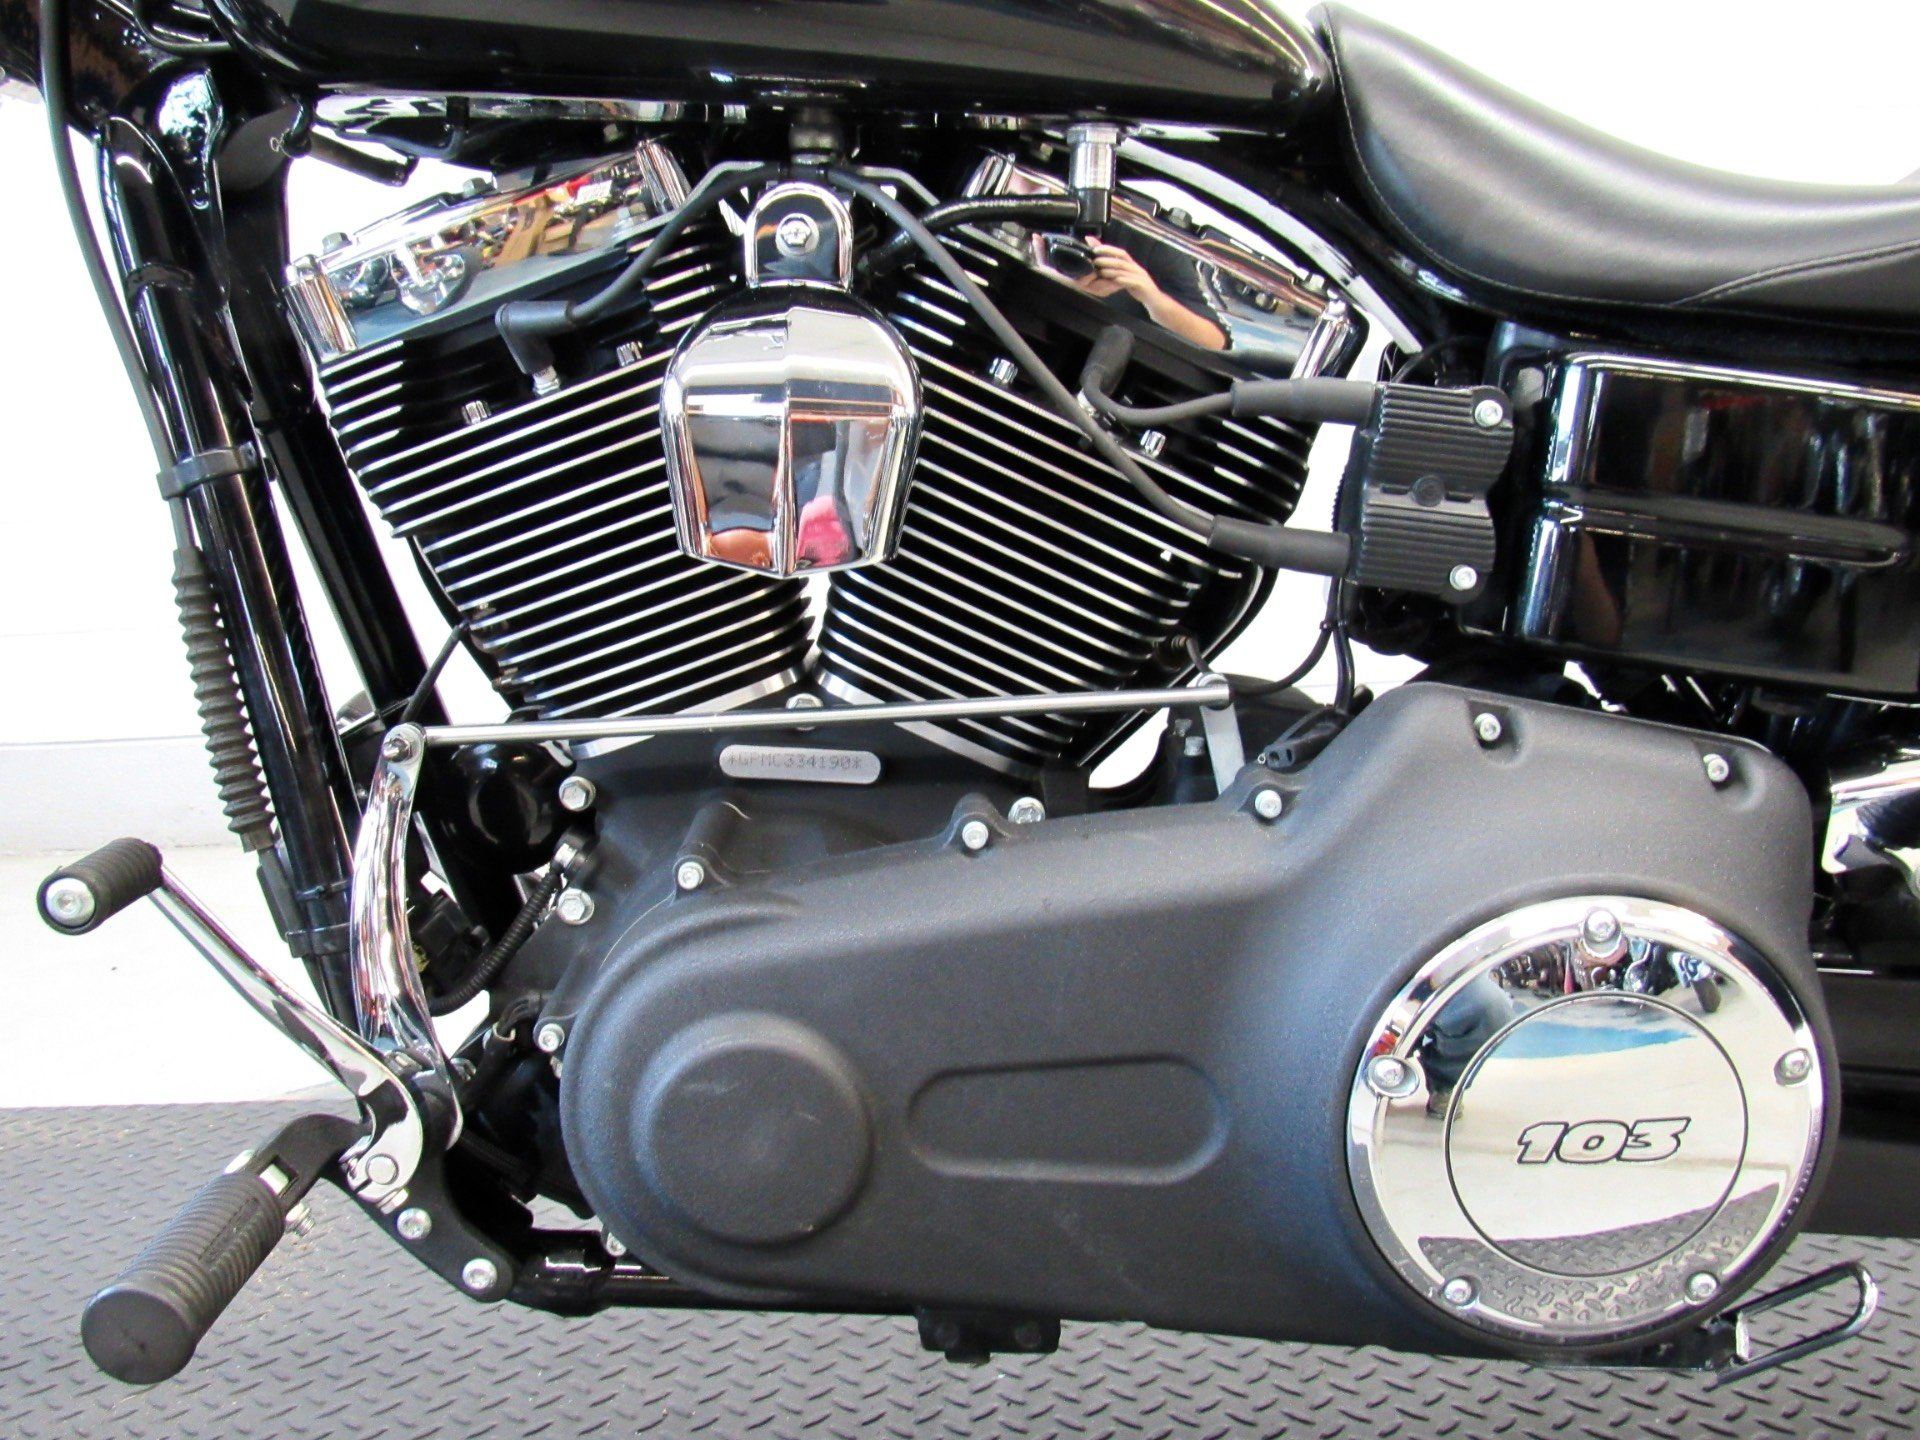 2012 Harley-Davidson Dyna® Wide Glide® in Fredericksburg, Virginia - Photo 19